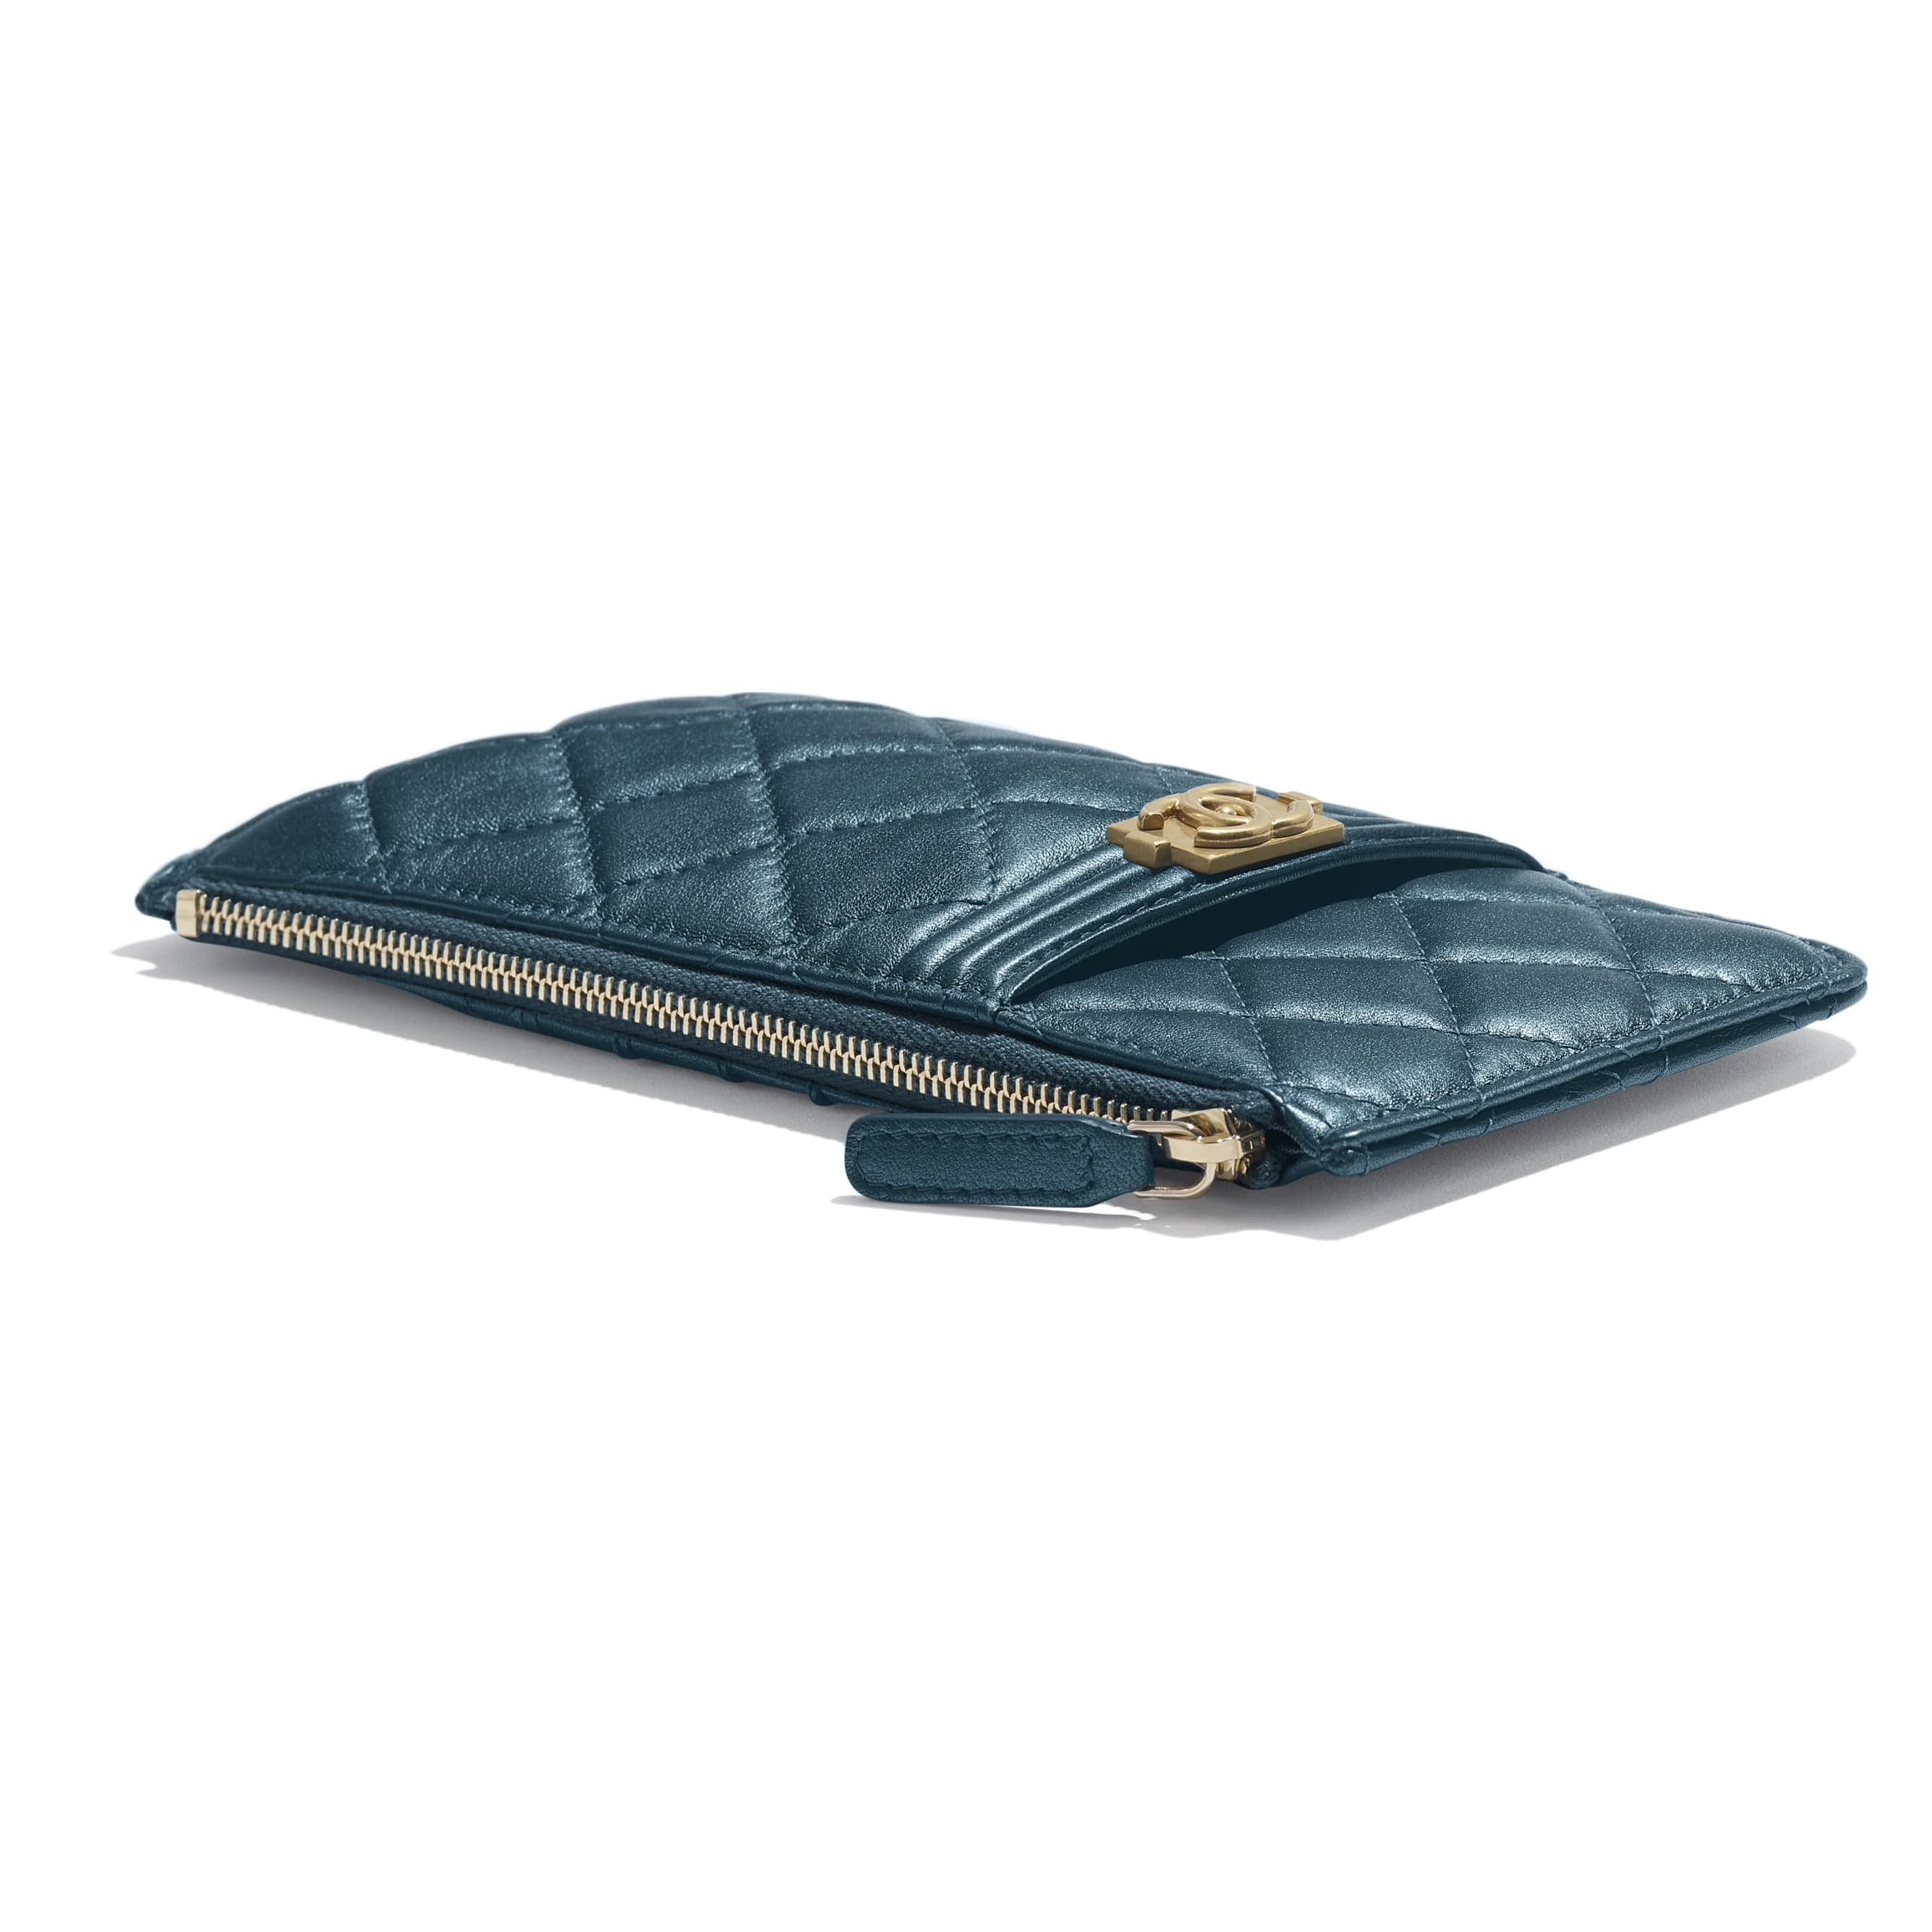 BOY CHANEL Phone & Card Holder - Blue - Metallic Lambskin & Gold Metal - CHANEL - Extra view - see standard sized version